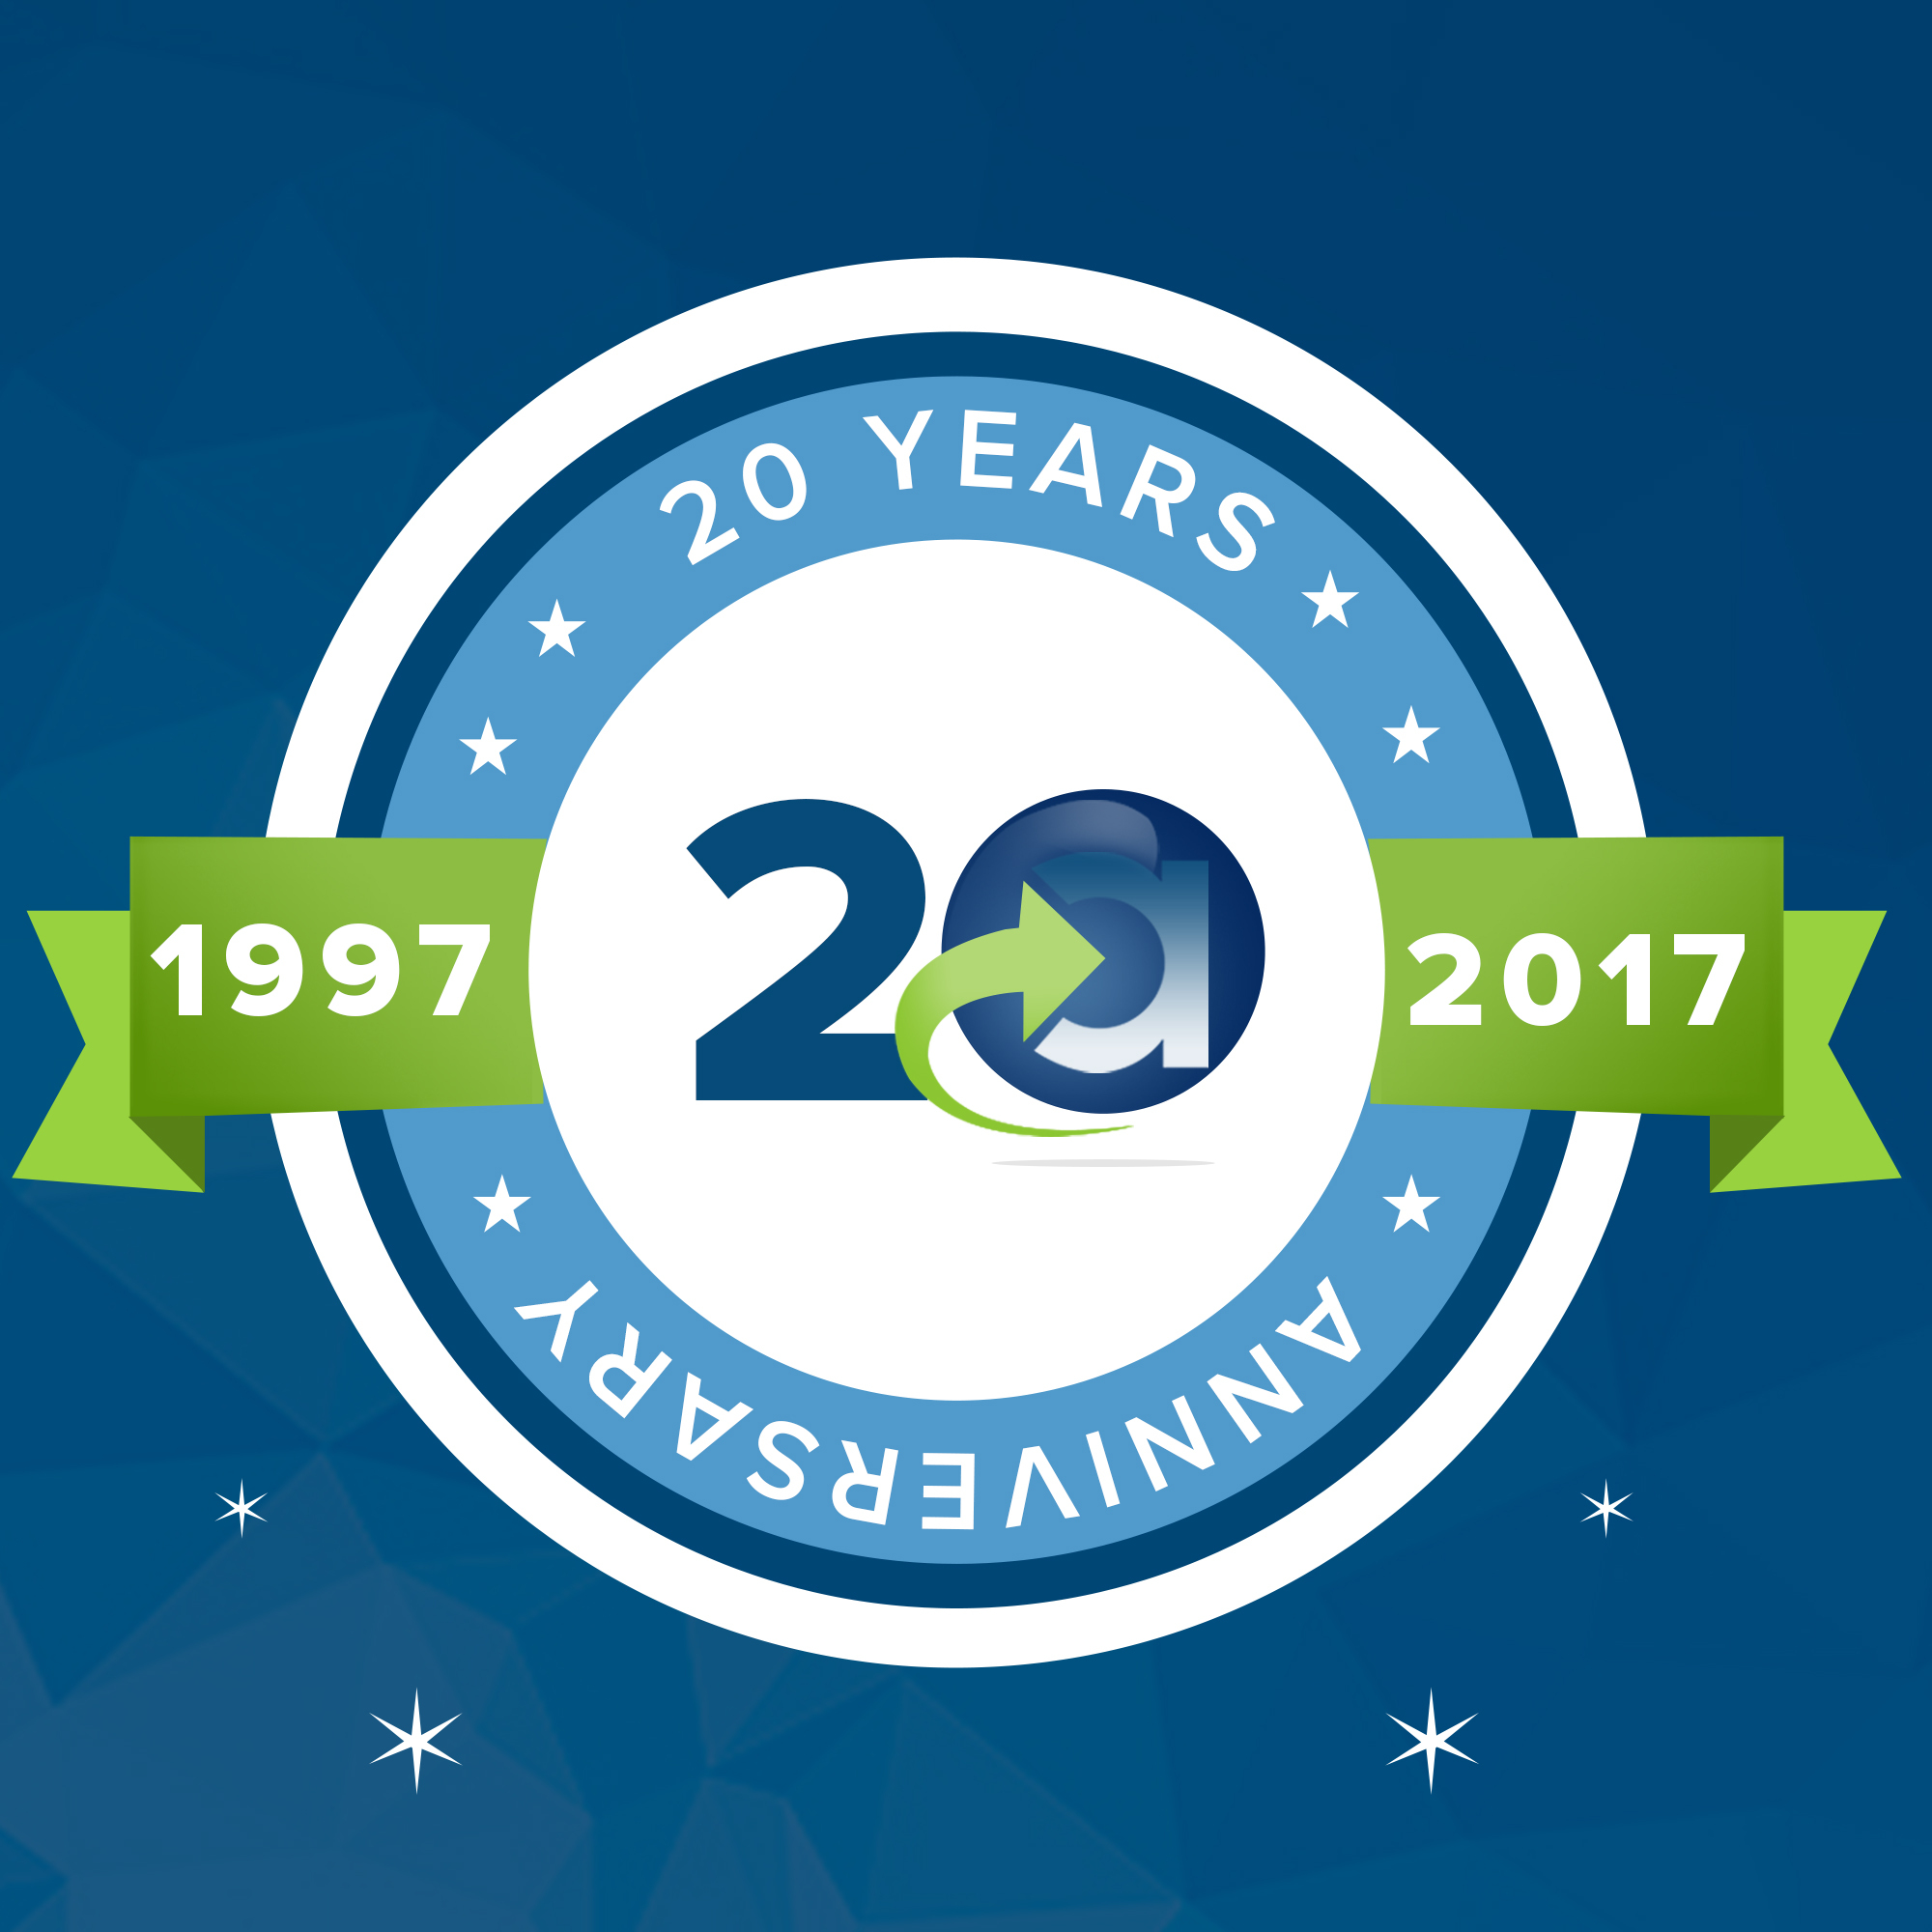 This year we are celebrating our 20th anniversary! By selecting Azam Marketing to do your work you are not risking your time and money on an inexperienced agency learning the ropes, but veterans in the business for more than two decades who know what works and what doesn't.